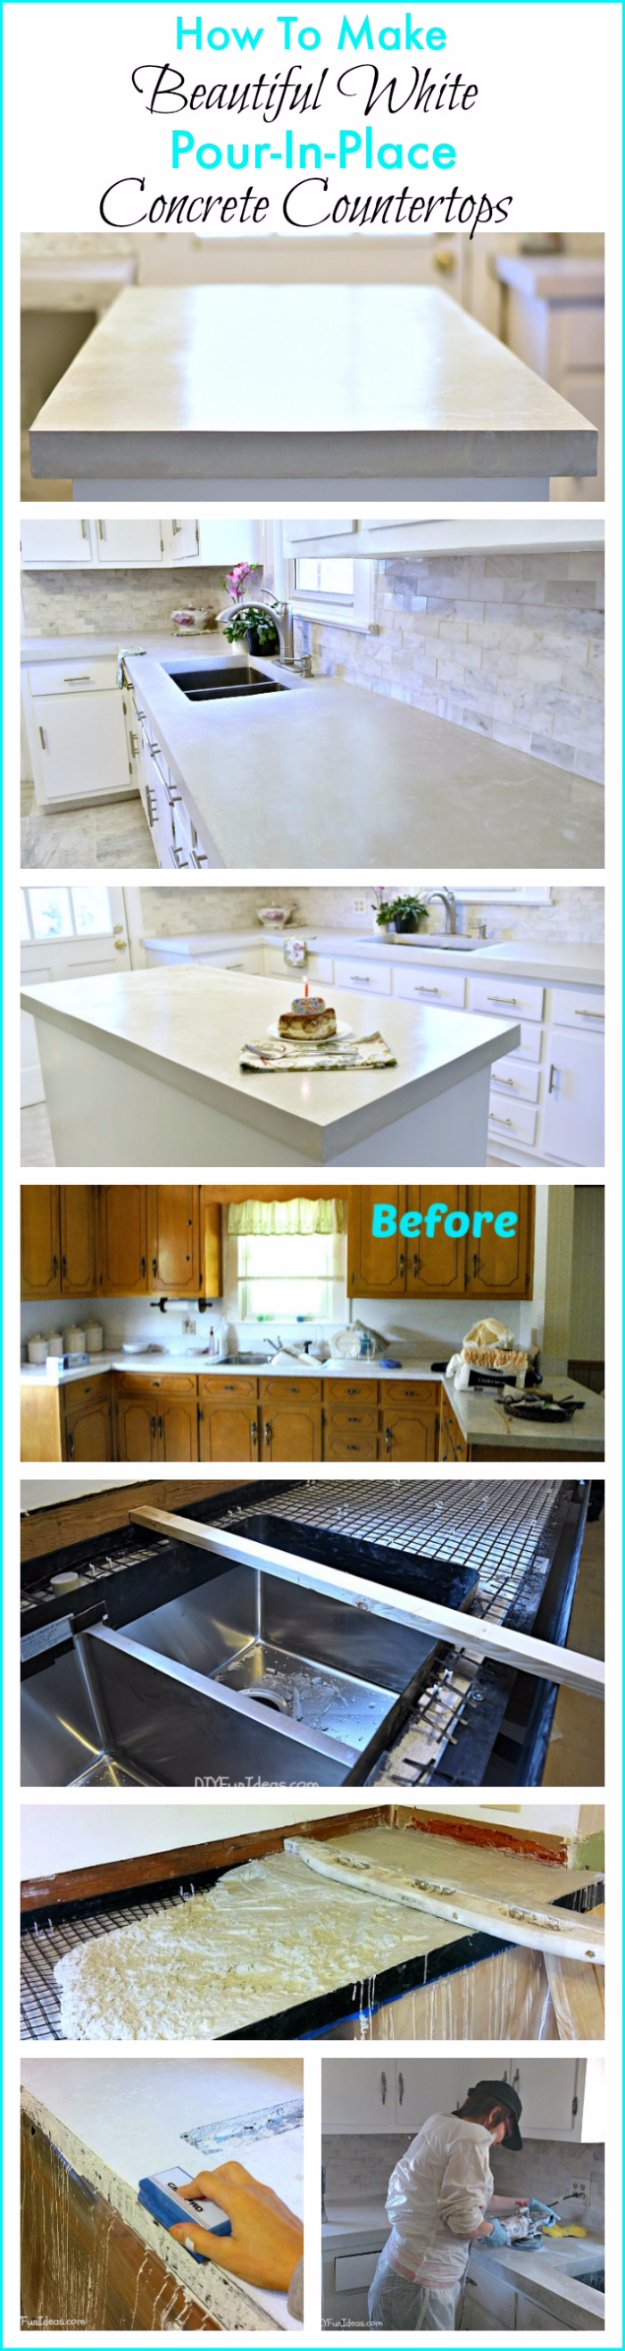 37 brilliant diy kitchen makeover ideas page 5 of 8 for Building kitchen cabinets in place